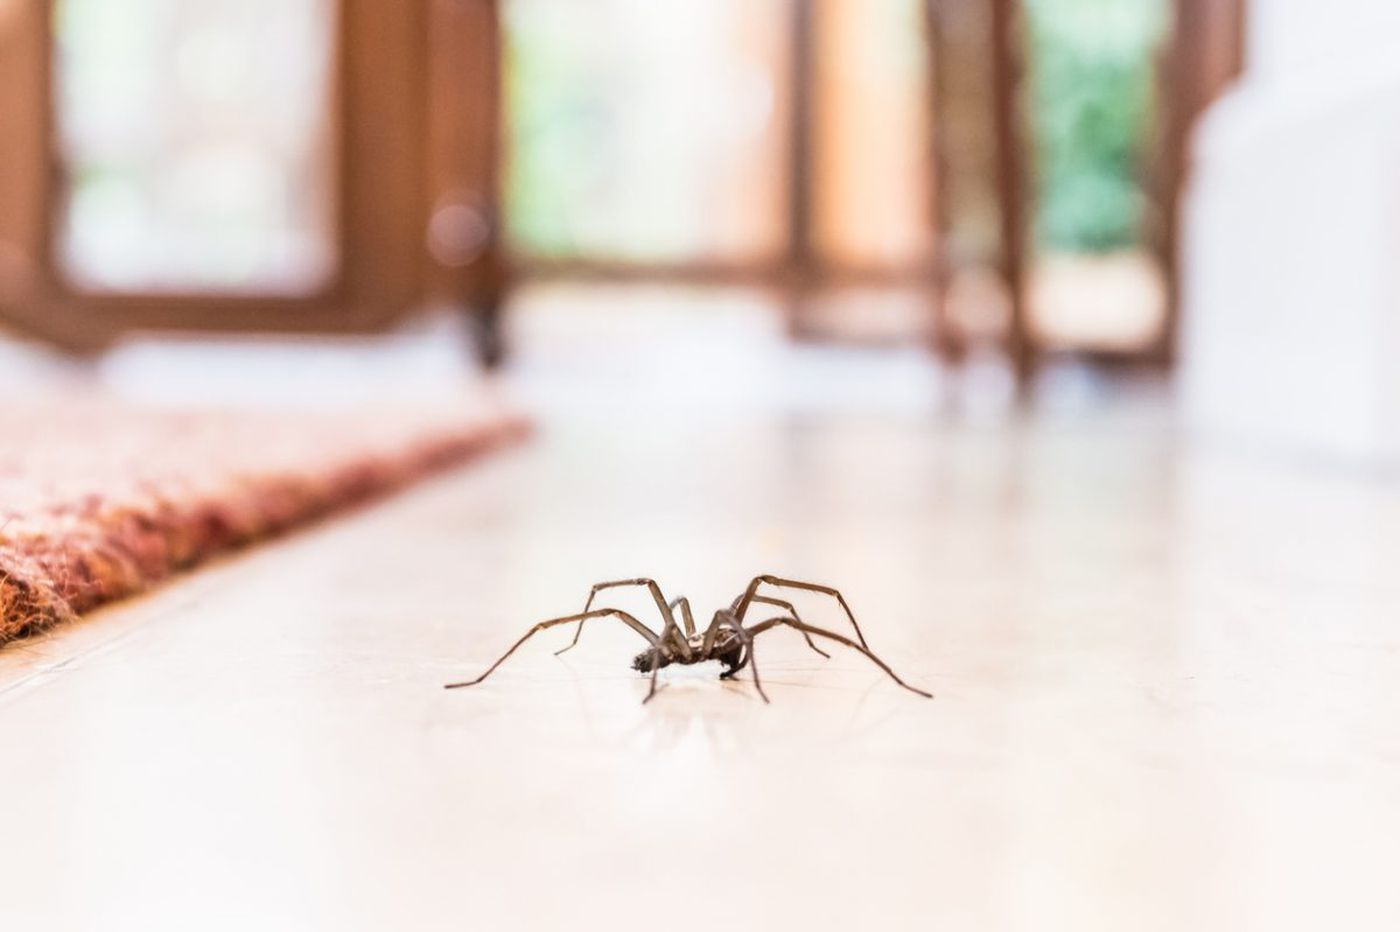 Why you shouldn't kill that spider in your house